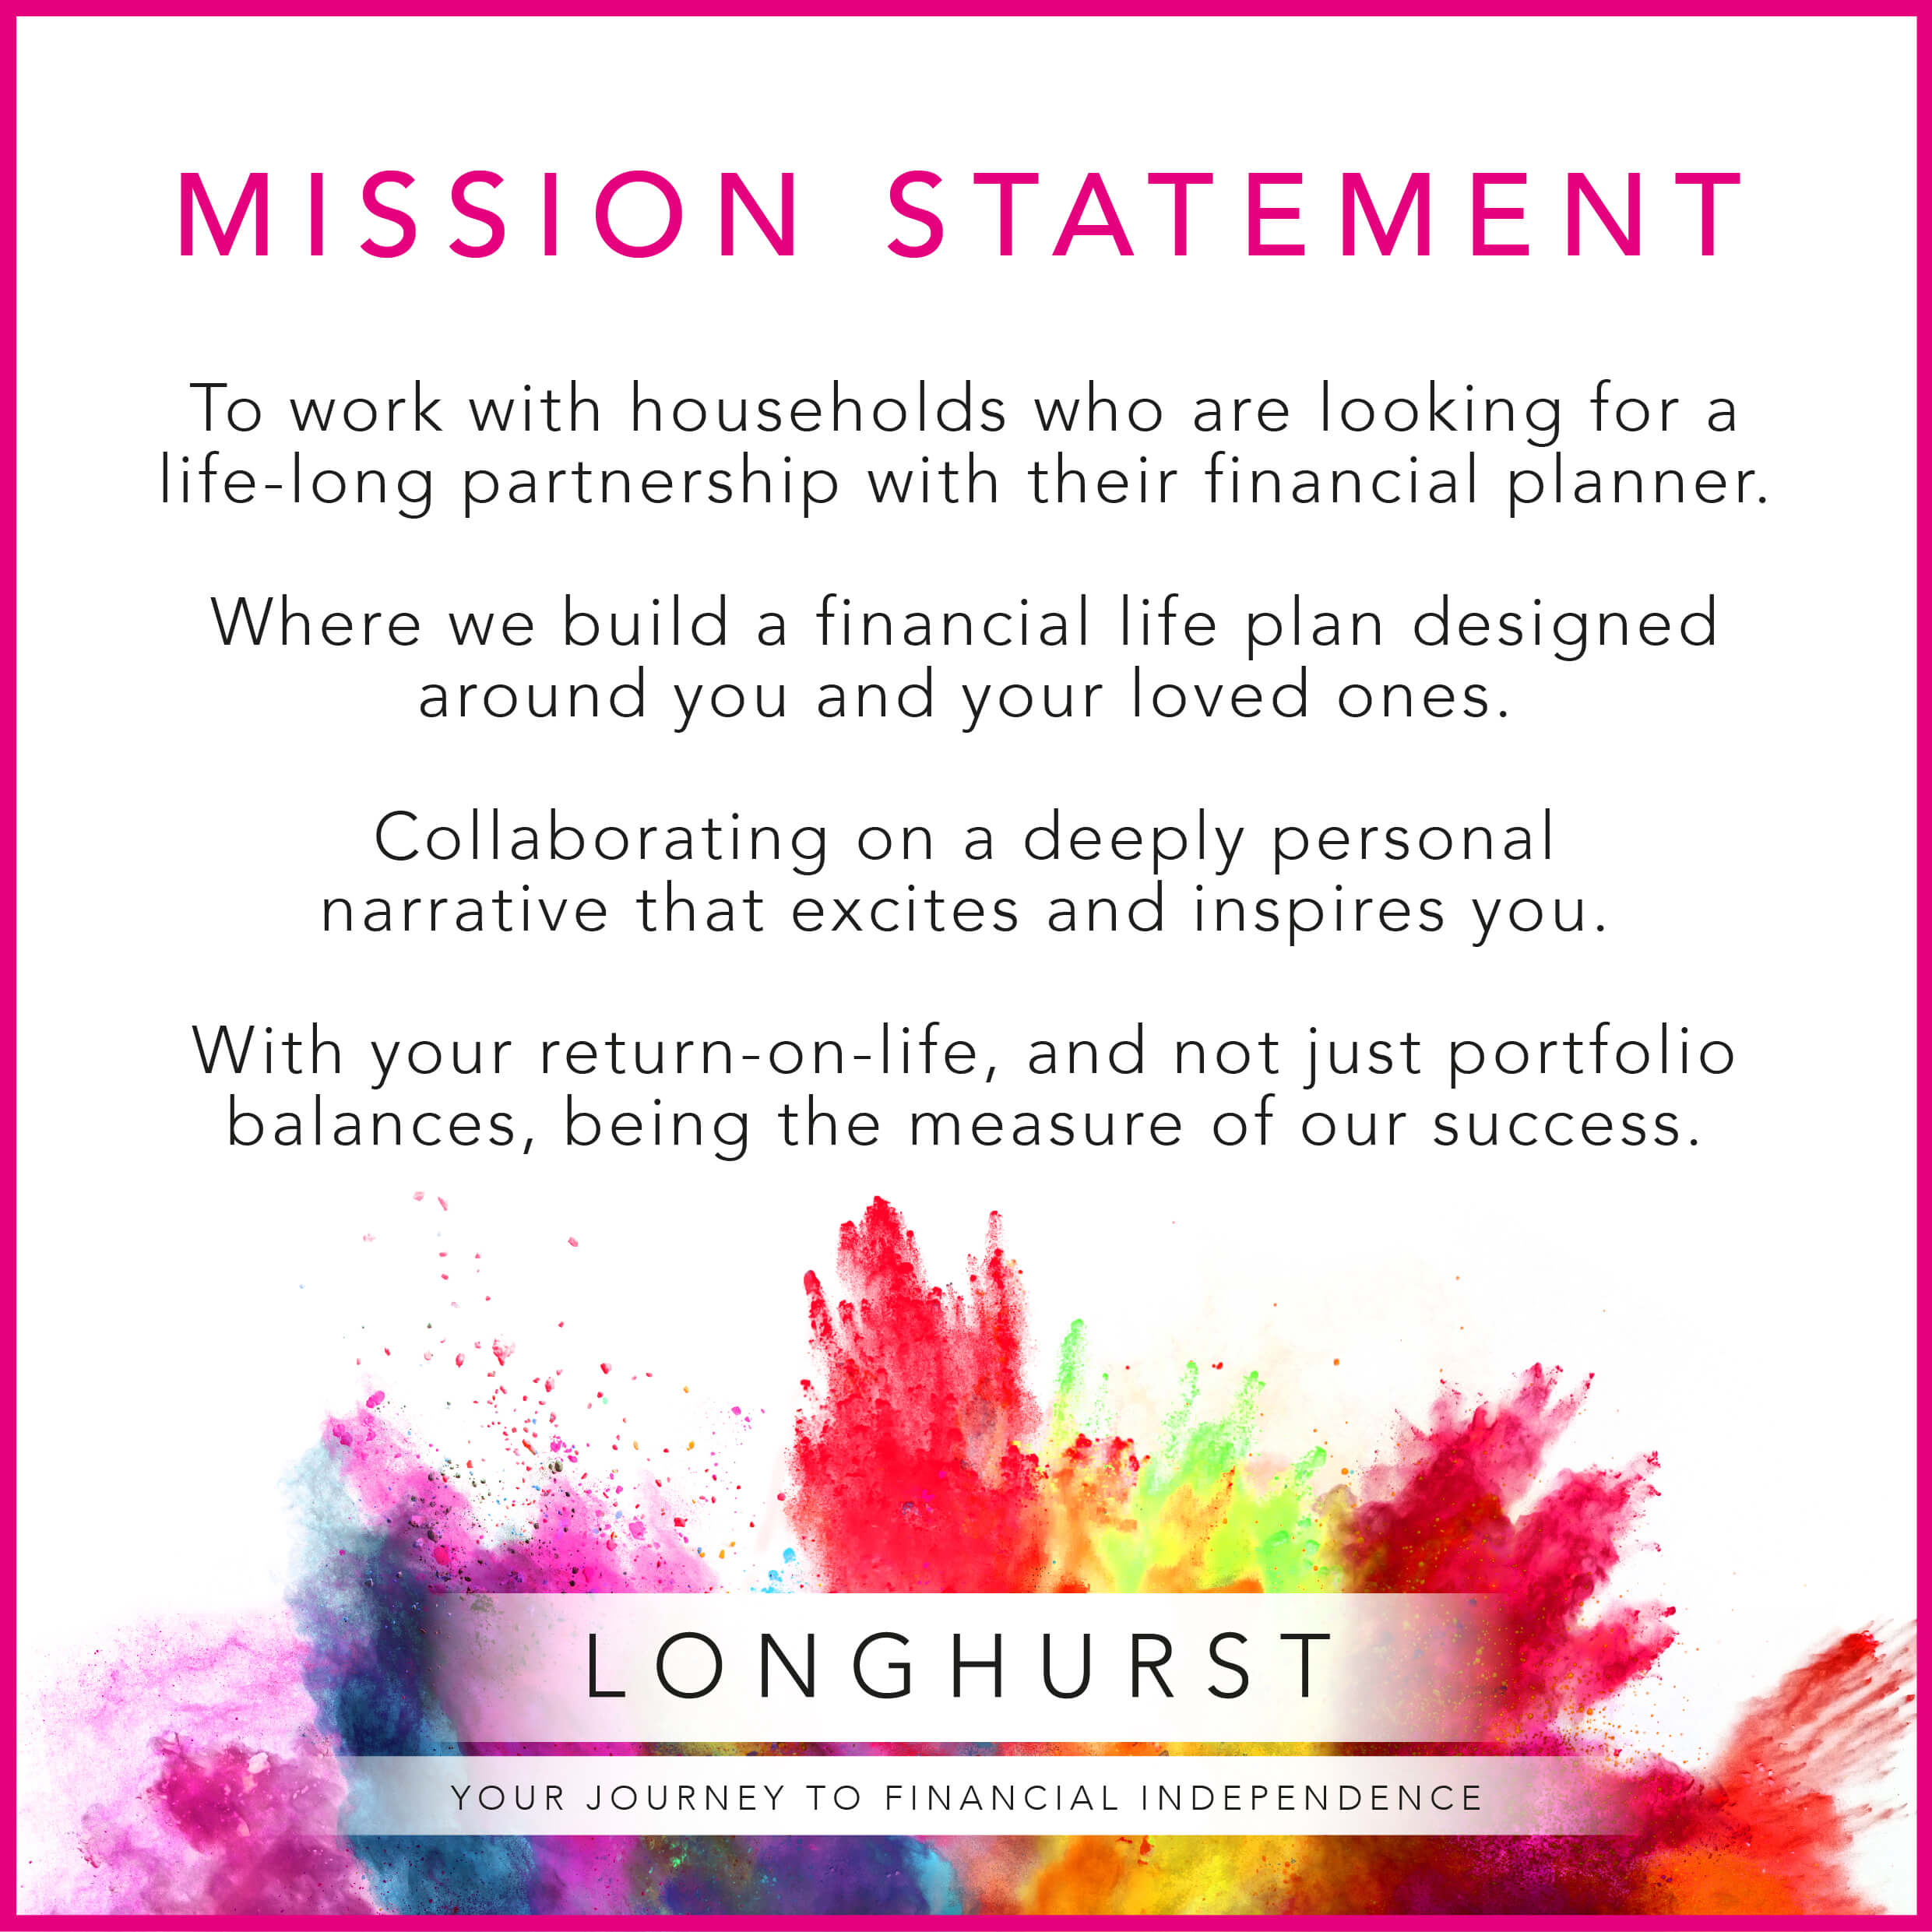 Longhurst - Mission Statement